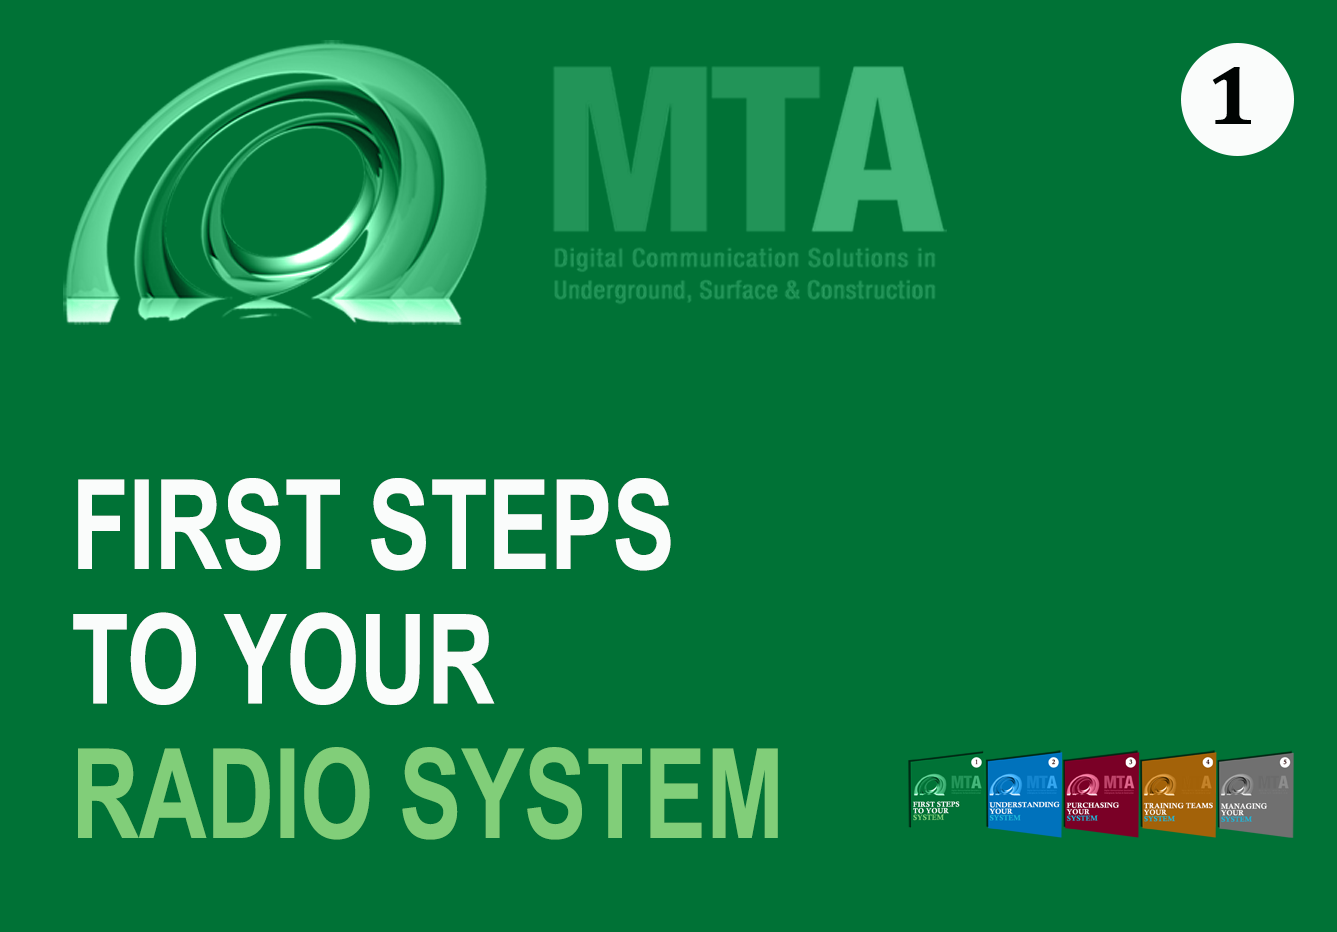 First Steps to Your Radio System